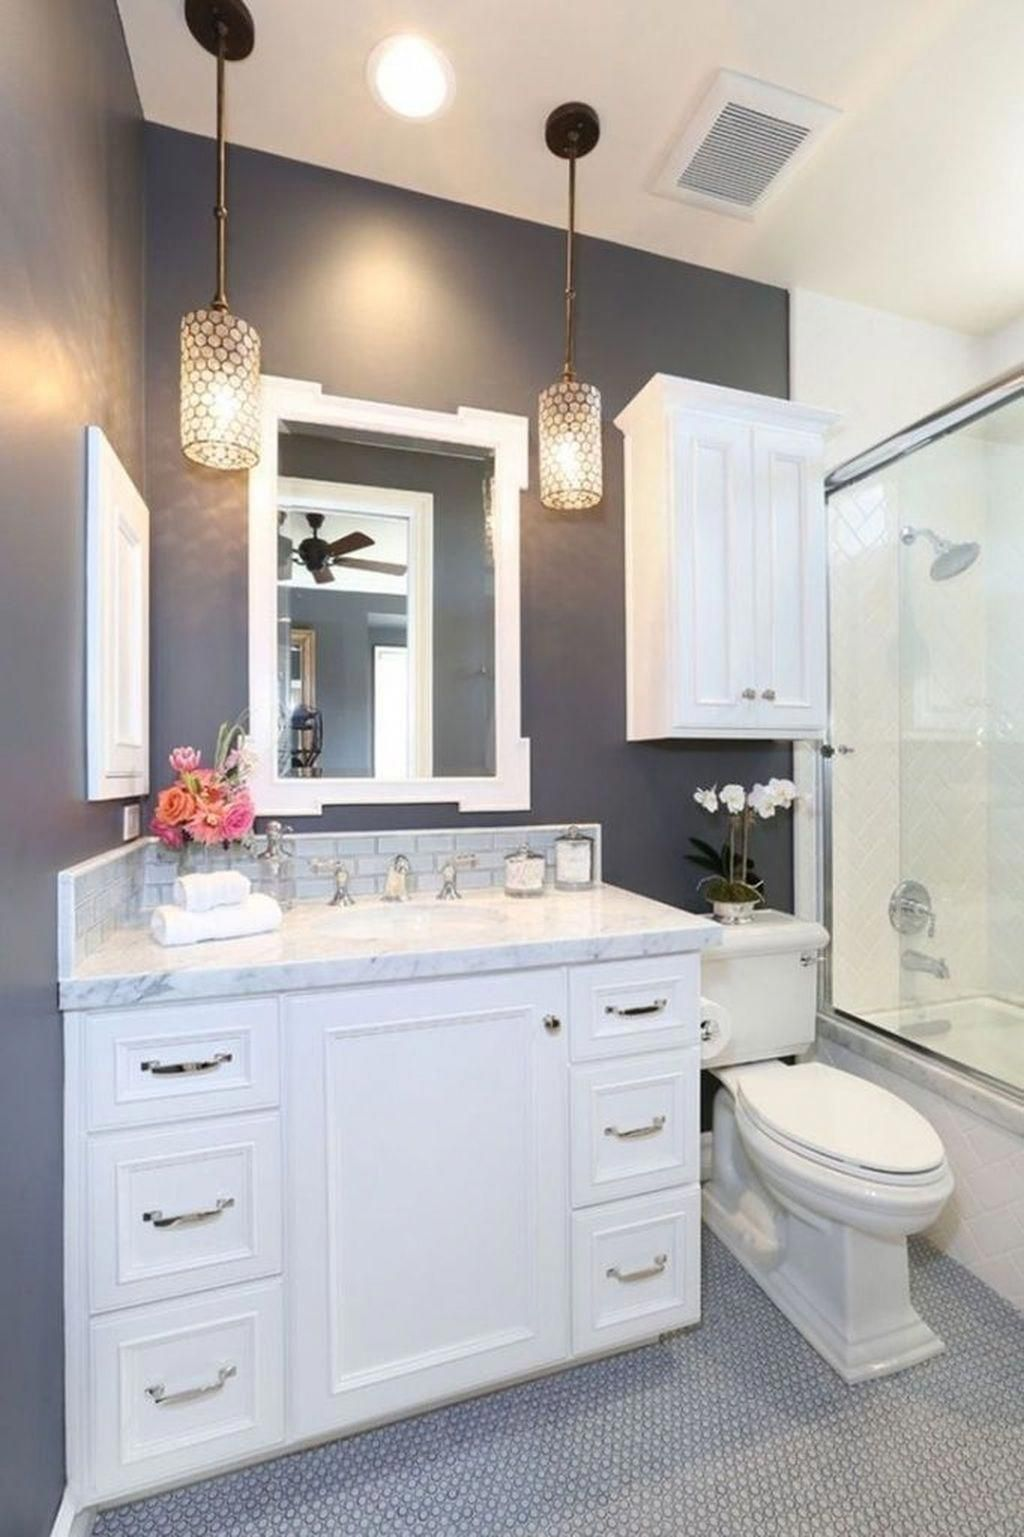 That Is Why It Is Recommended That You Know Ahead Of Time How Much Room You Will Small Apartment Bathroom Bathroom Remodel Master Small Bathroom Renovations